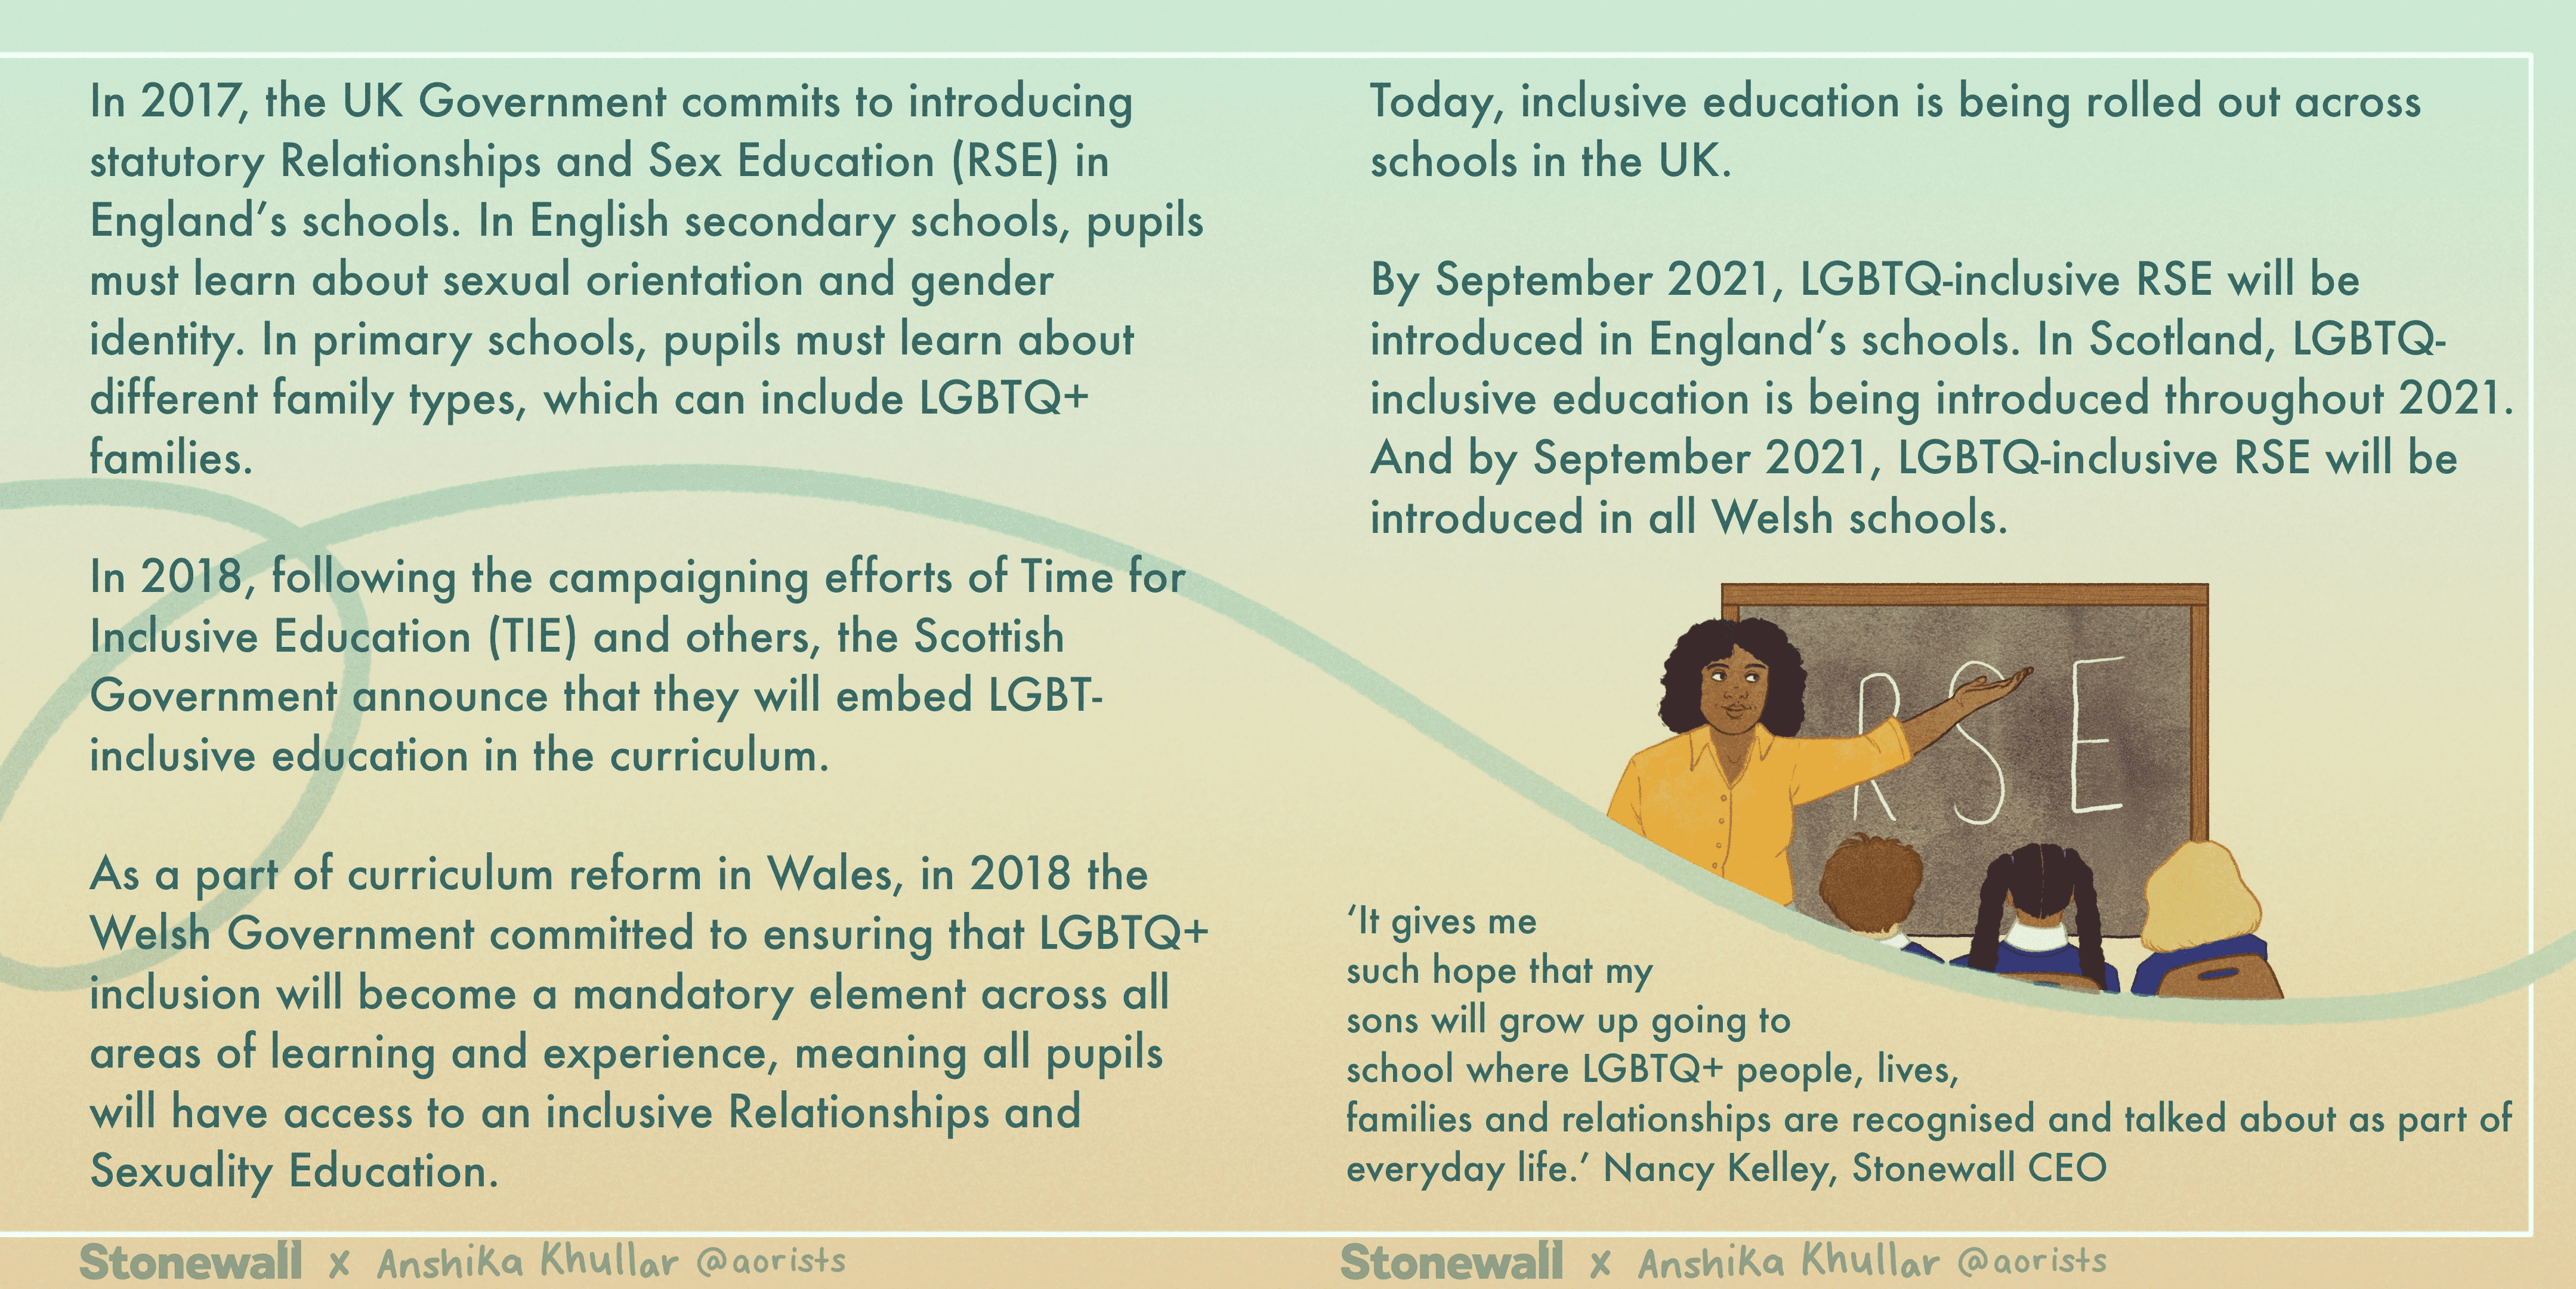 In 2017, the UK Government commits to introducing statutory Relationships and Sex Education (RSE) in England's schools. In English secondary schools, pupils must learn about sexual orientation and gender identity. In primary schools, pupils must learn about different family types, which can include LGBTQ+ families. In 2018, following the campaigning efforts of Time for Inclusive Education (TIE) and others, the Scottish Government announce that they will embed LGBT-inclusive education in the curriculum. As a part of curriculum reform in Wales, in 2018 the Welsh Government committed to ensuring that LGBTQ+ inclusion will become a mandatory element across all areas of learning and experience, meaning all pupils will have access to an inclusive Relationships and Sexuality Education. Today, inclusive education is being rolled out across schools in the UK. By September 2021, LGBTQ-inclusive RSE will be introduced in England's schools. In Scotland, LGBTQ-inclusive education is being introduced throughout 2021. And by September 2021, LGBTQ-inclusive RSE will be introduced in all Welsh schools. 'It gives me such hope that my sons will grow up going to school where LGBTQ+ people, lives, families and relationships are recognised and talked about as part of everyday life.' Nancy Kelley, Stonewall CEO. Mini illustration of: a classroom with a teacher teaching inclusive education to students.